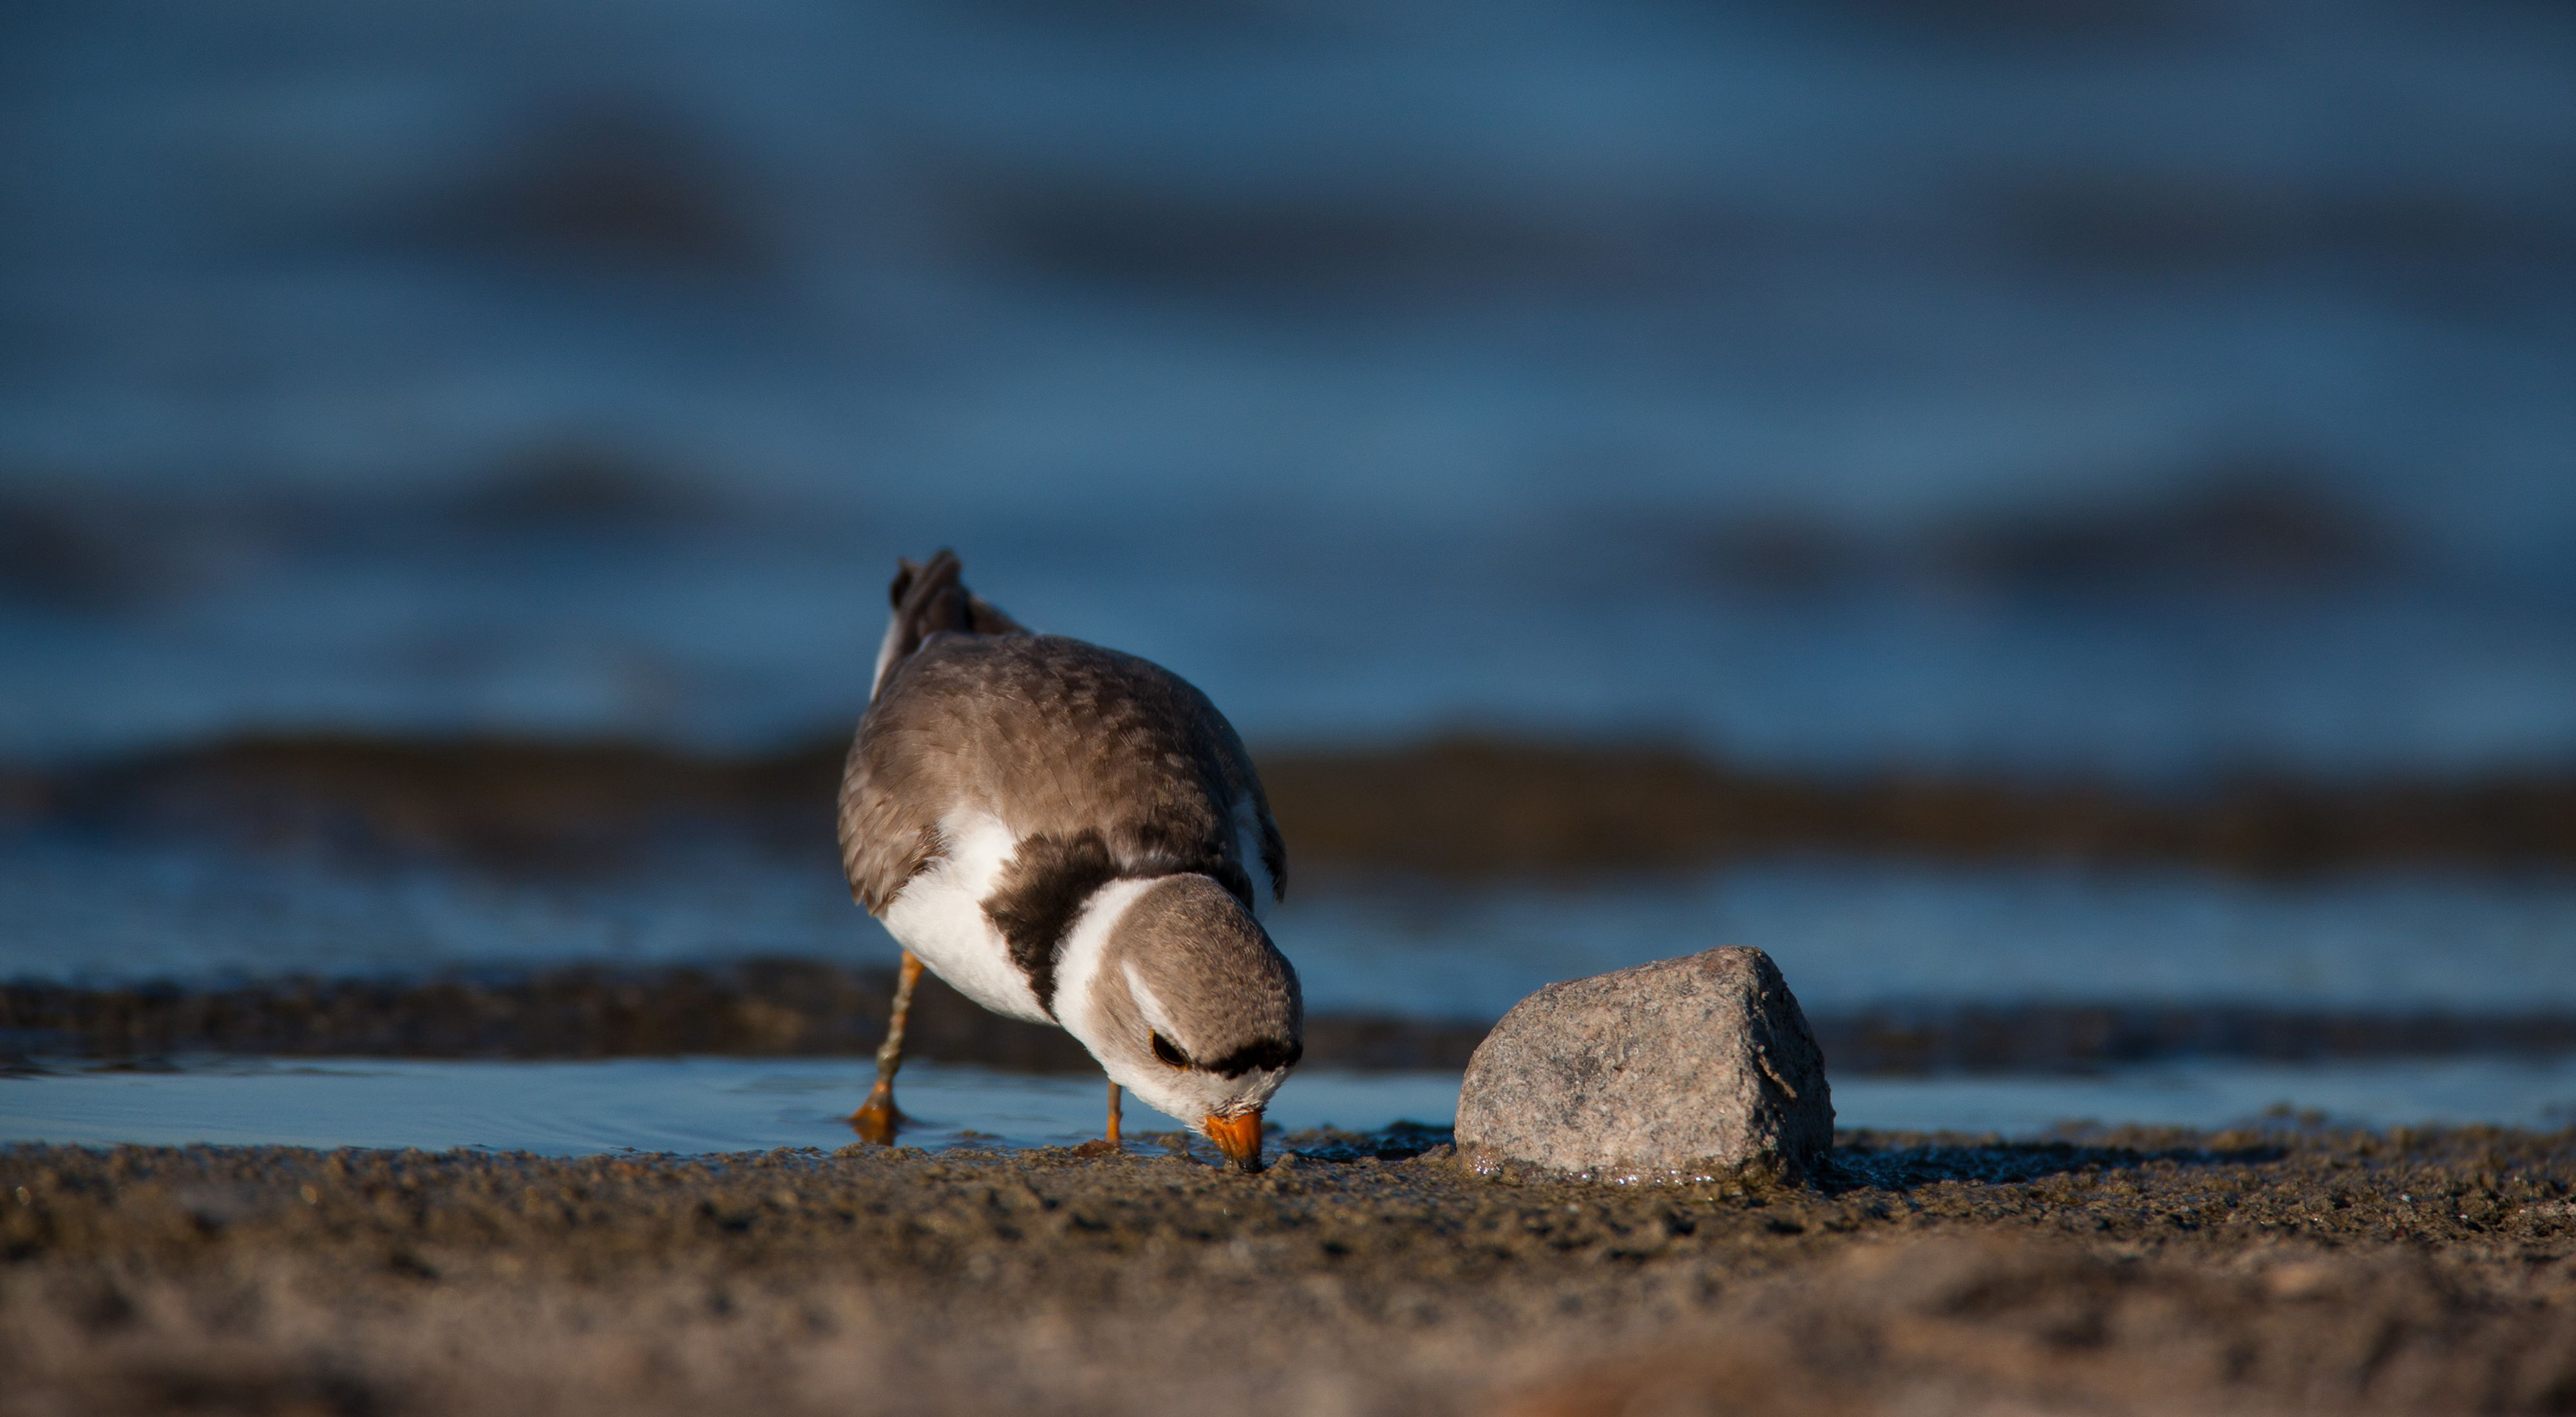 Piping plover on a beach in front of a lake.